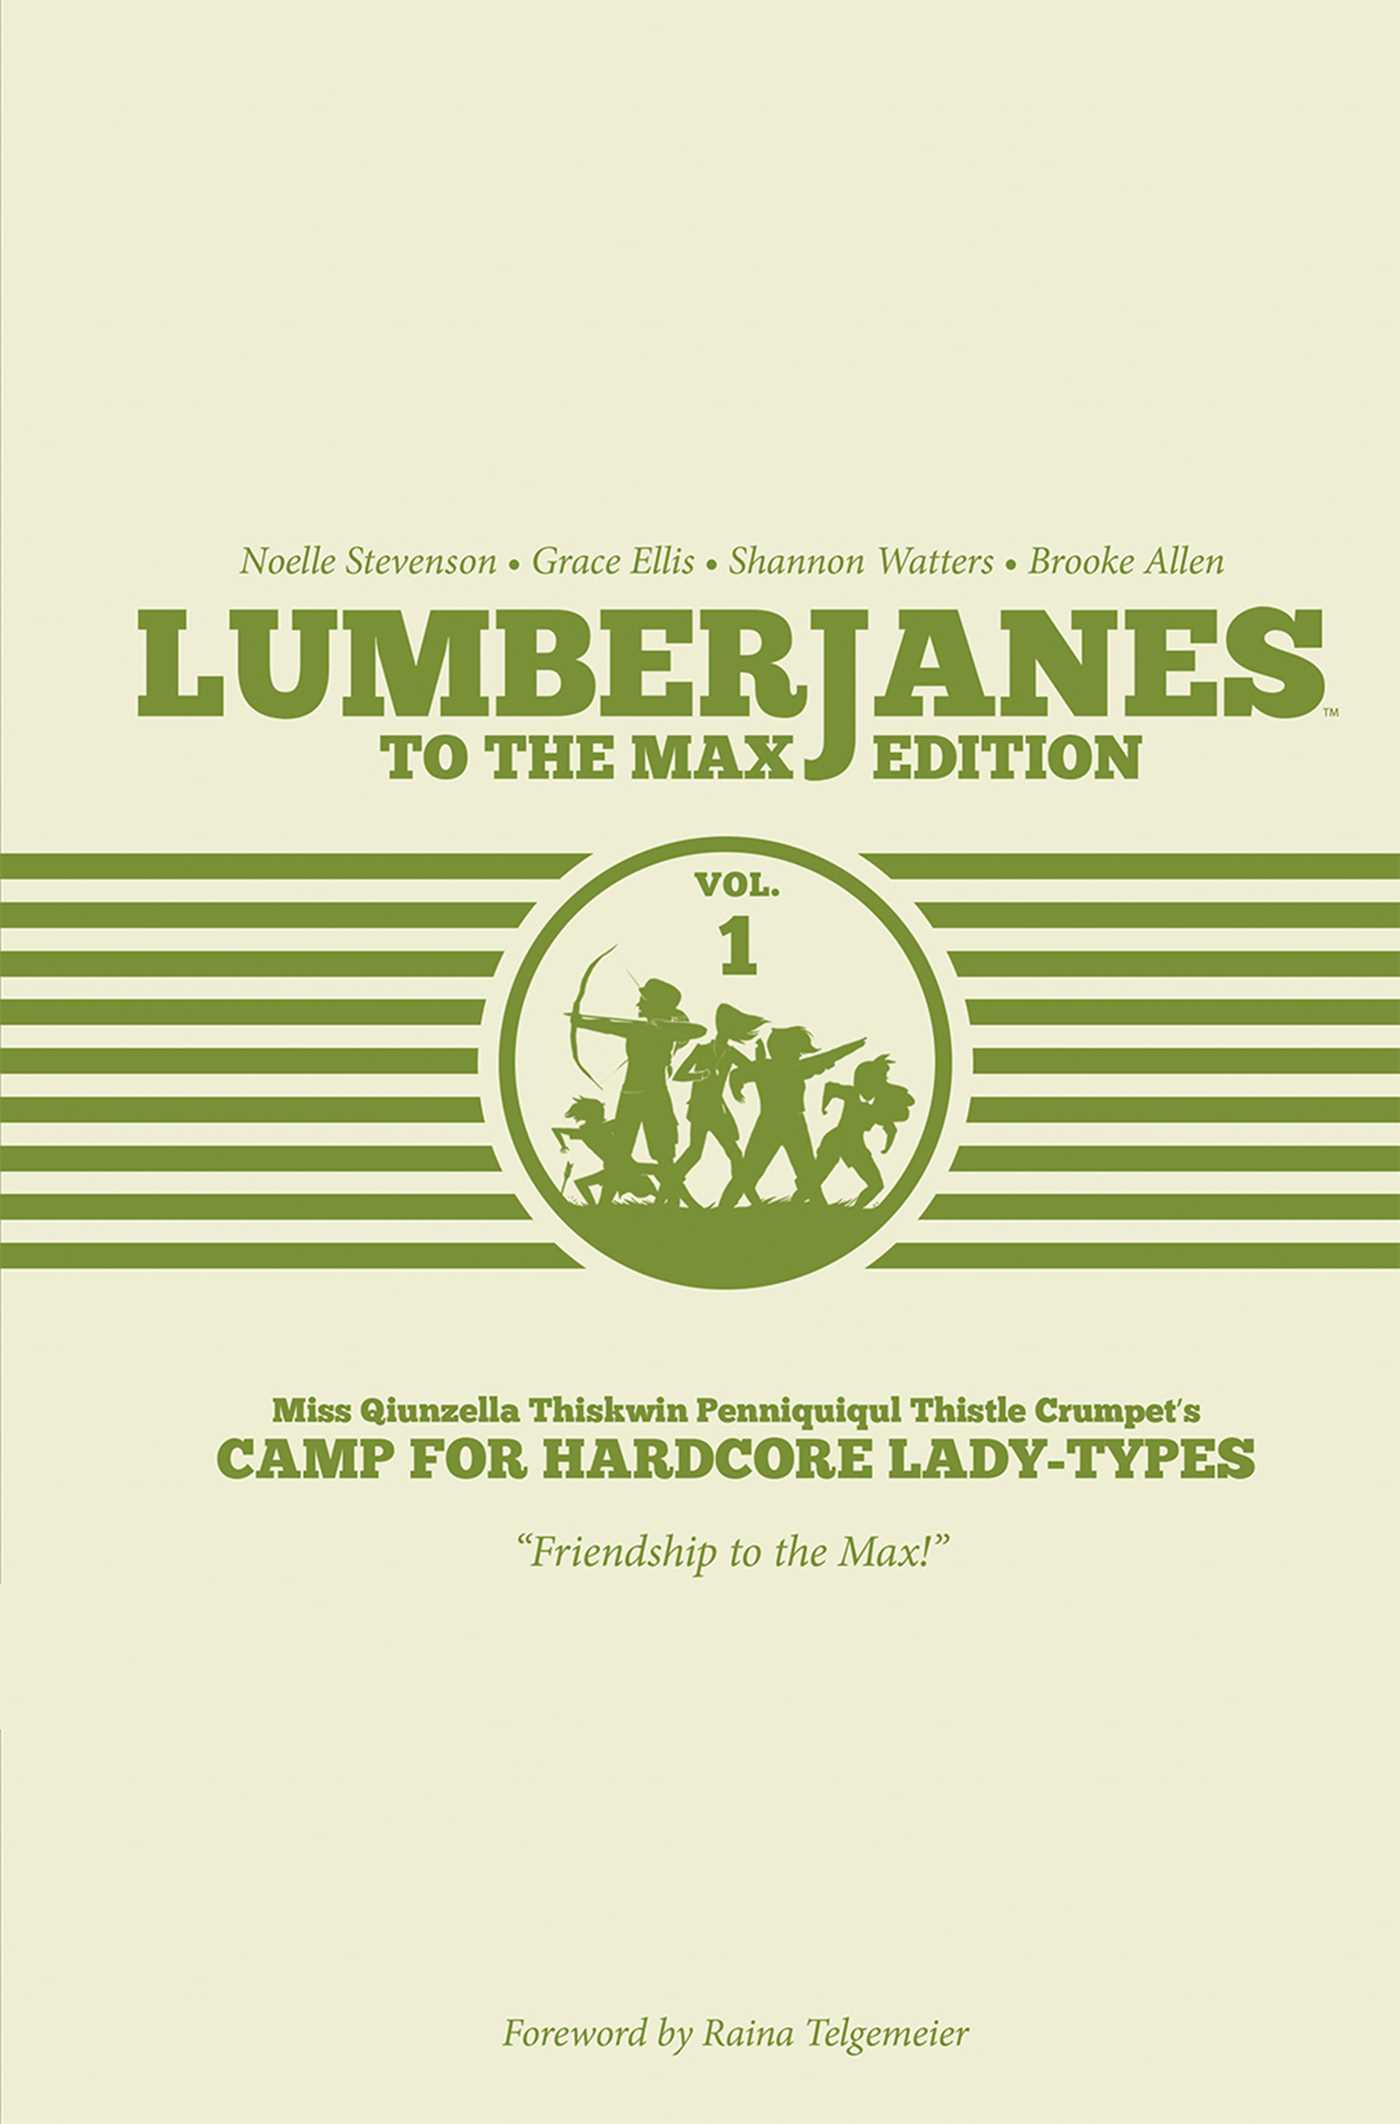 Lumberjanes to the max edition vol 1 9781608868094 hr